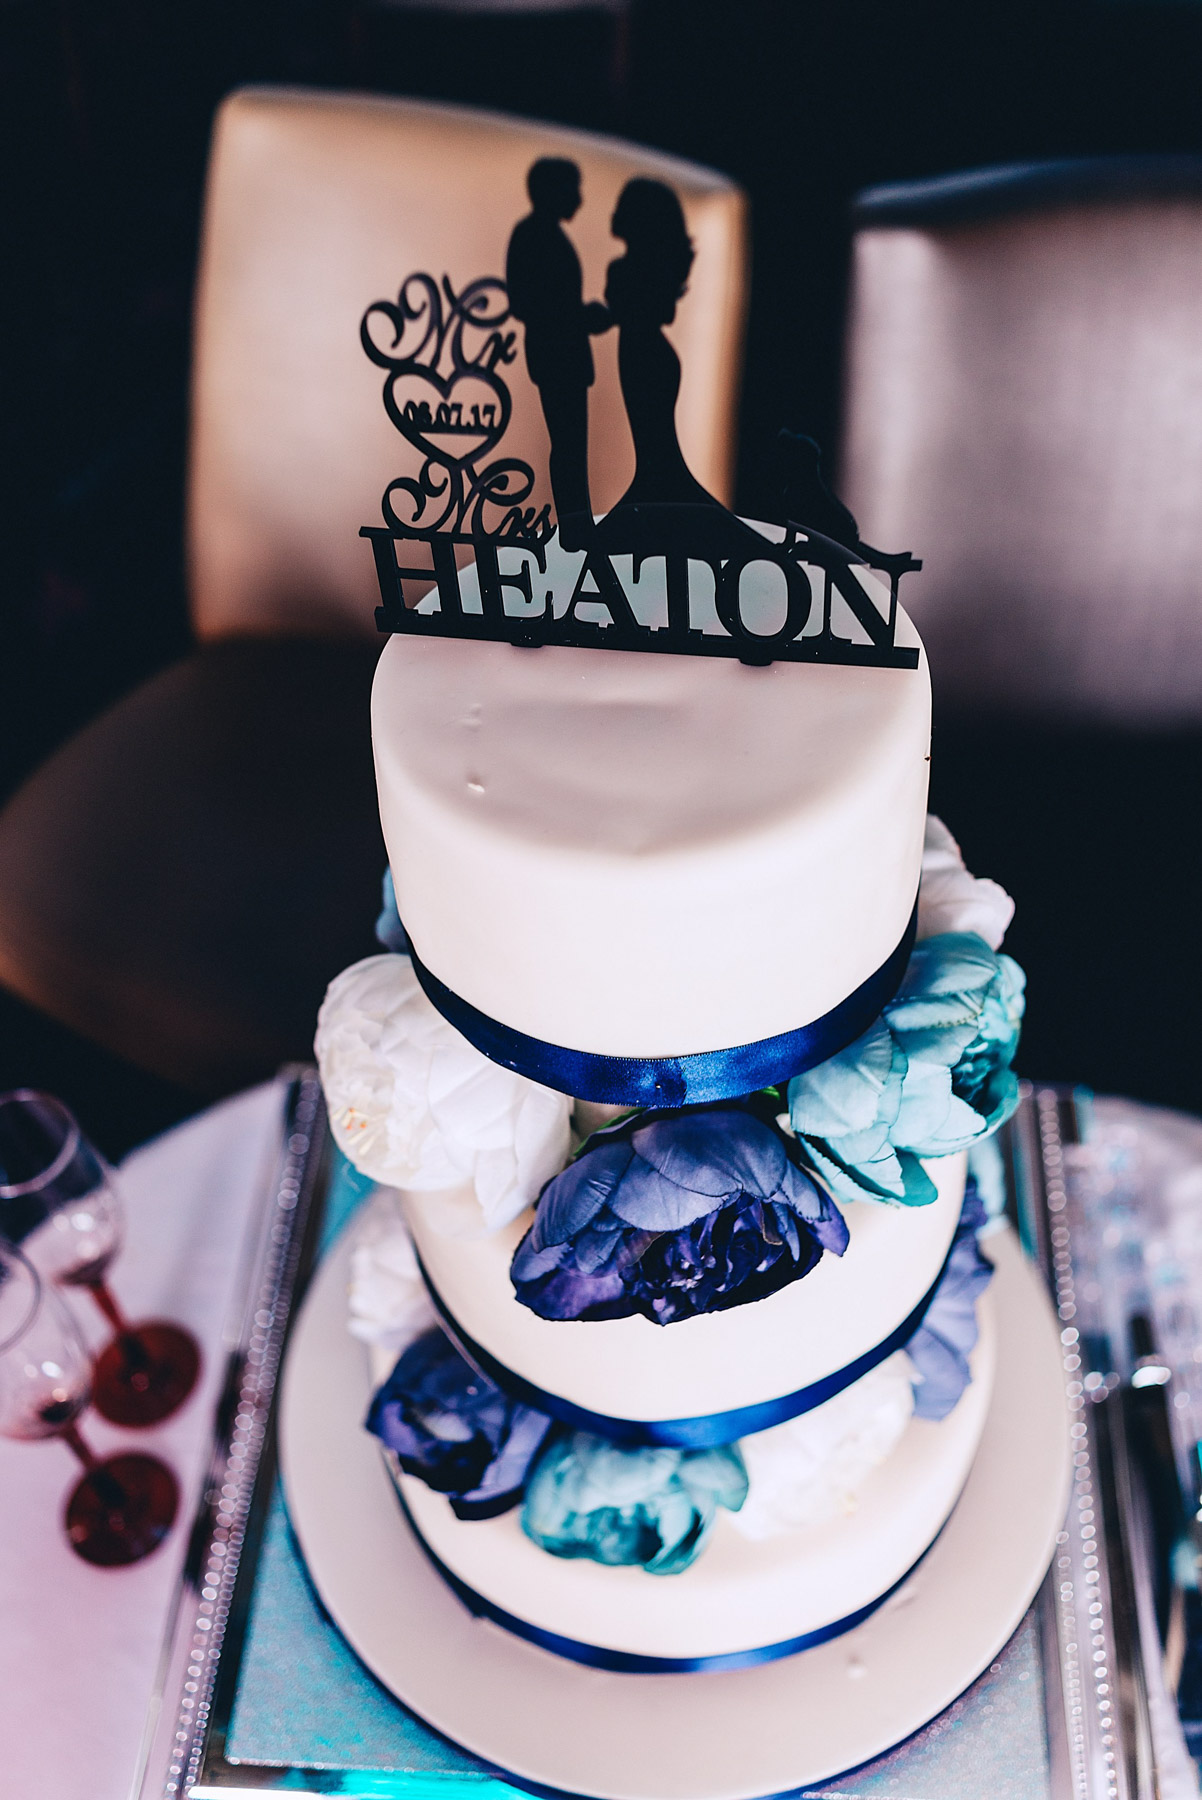 Wedding cake with couples name on the top